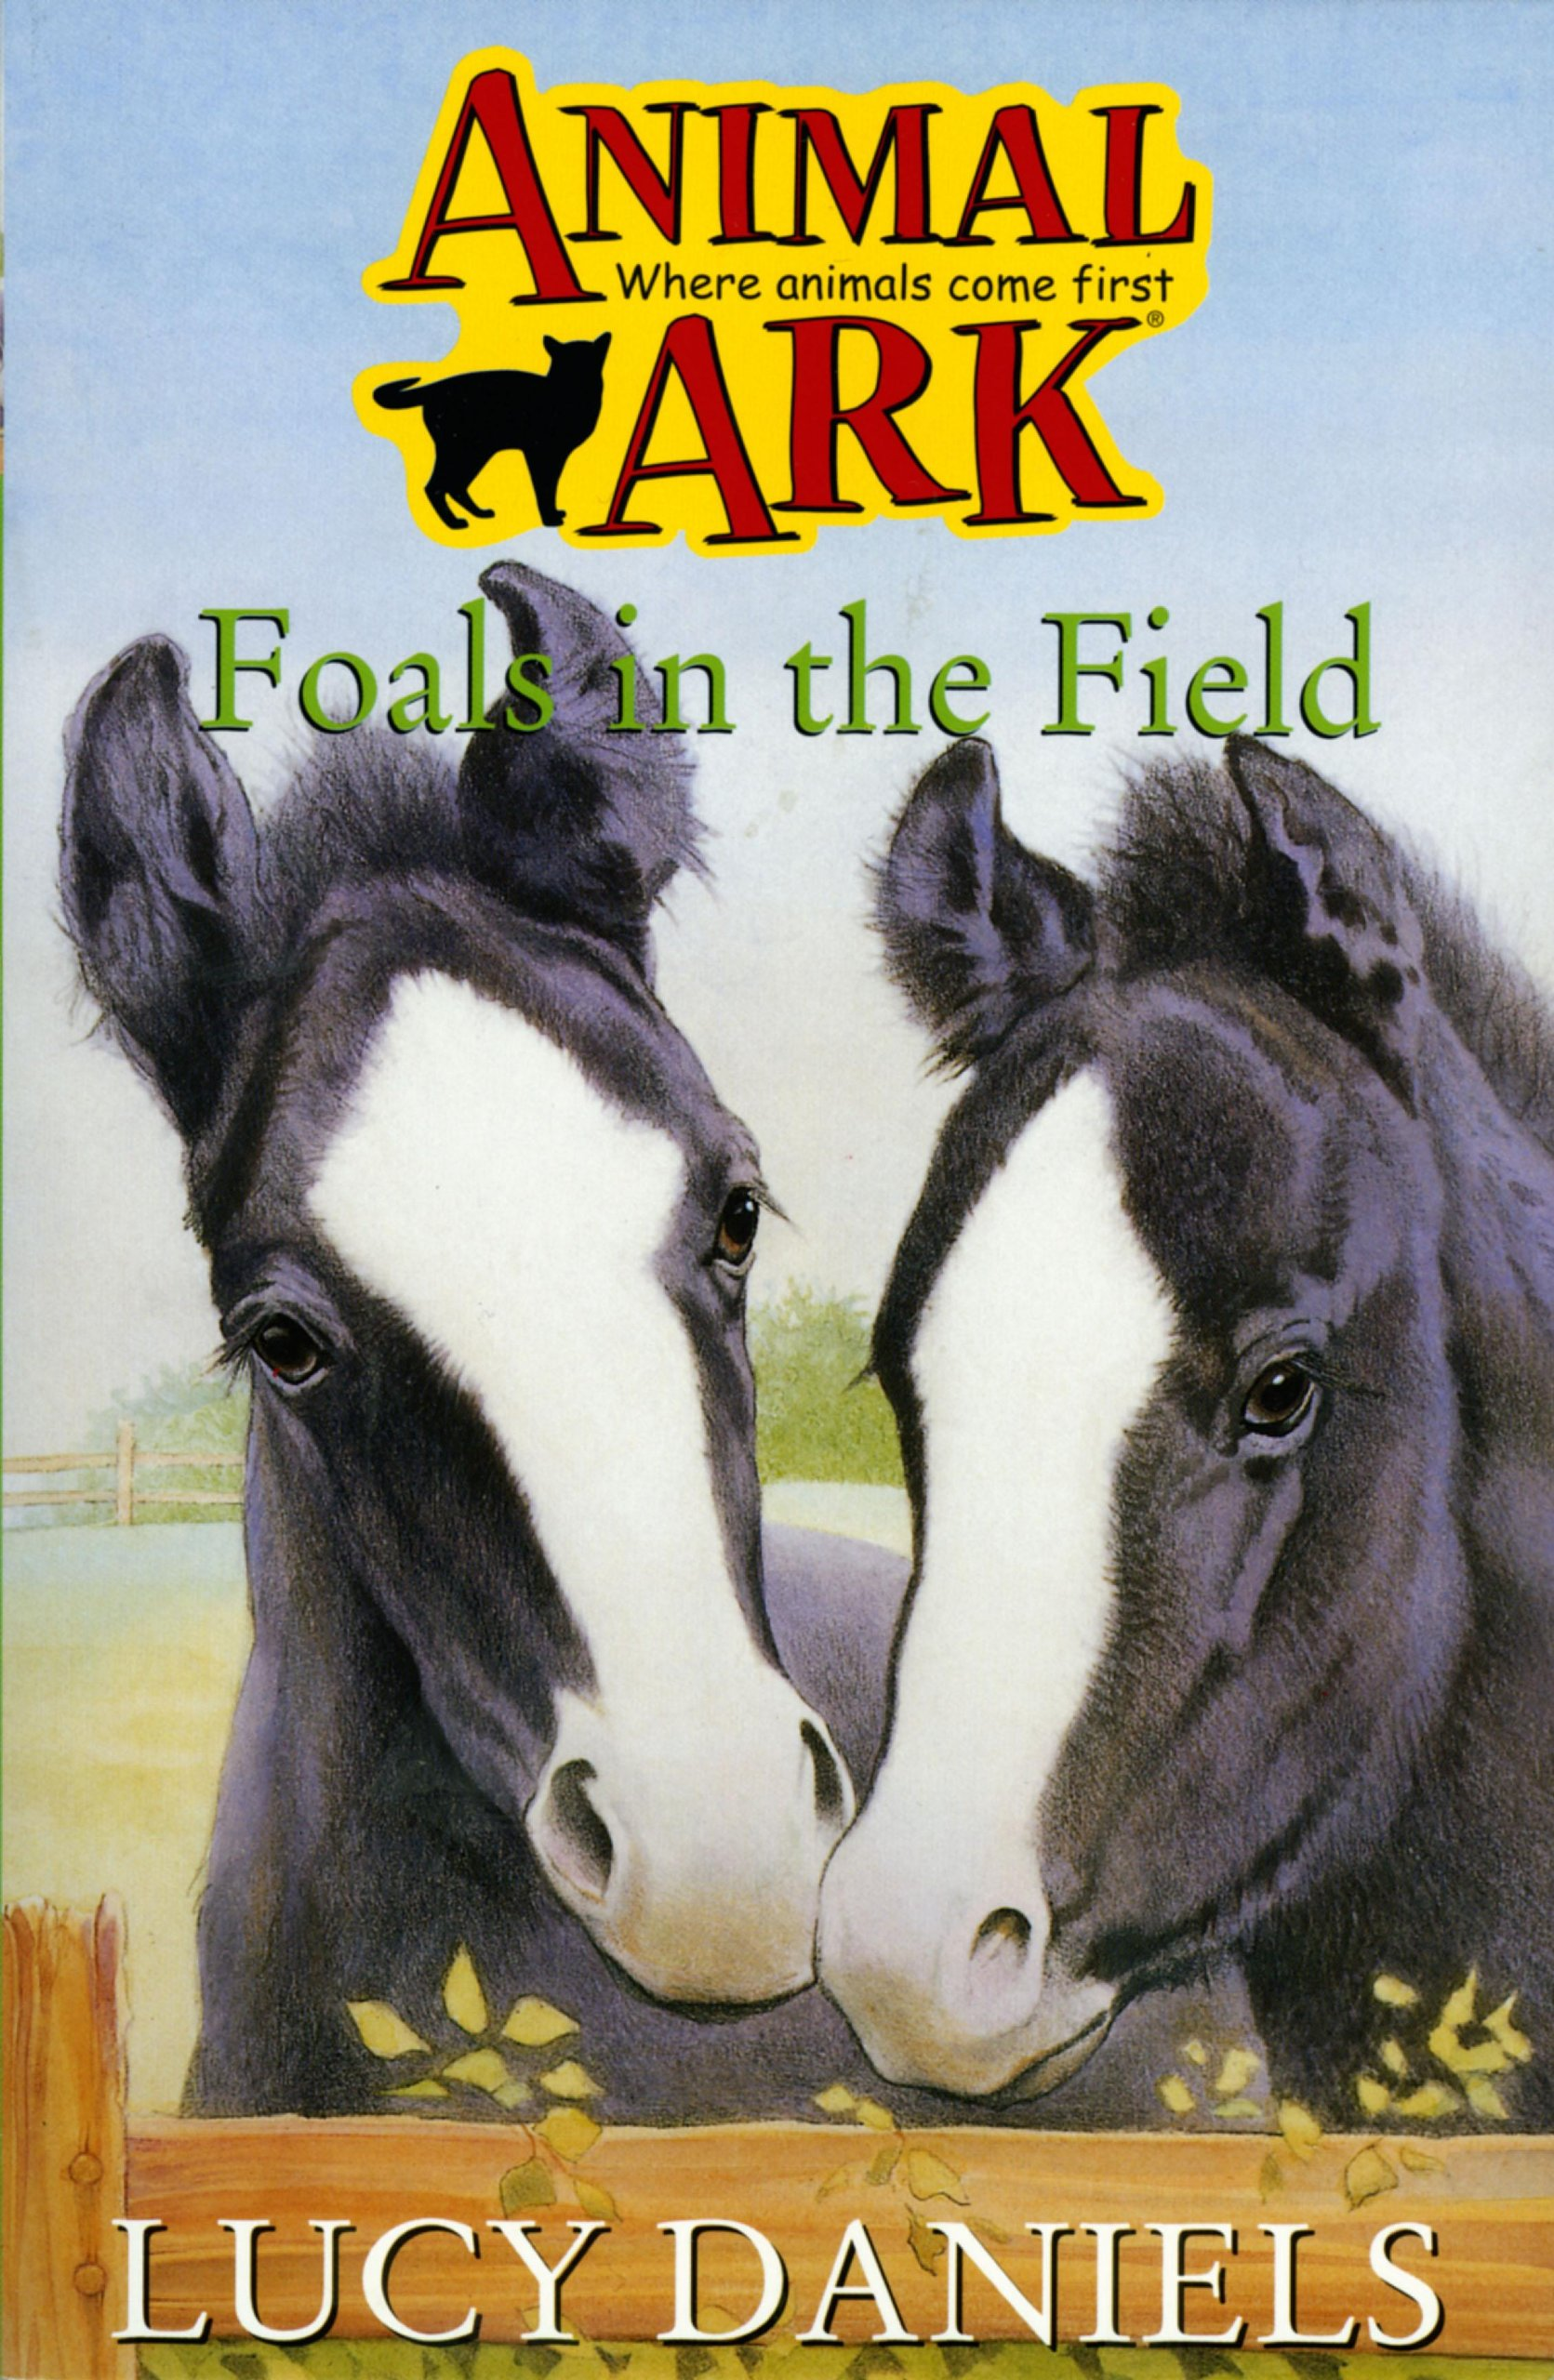 animal ark 28 foals in the field co uk lucy daniels animal ark 28 foals in the field co uk lucy daniels 9780340699492 books